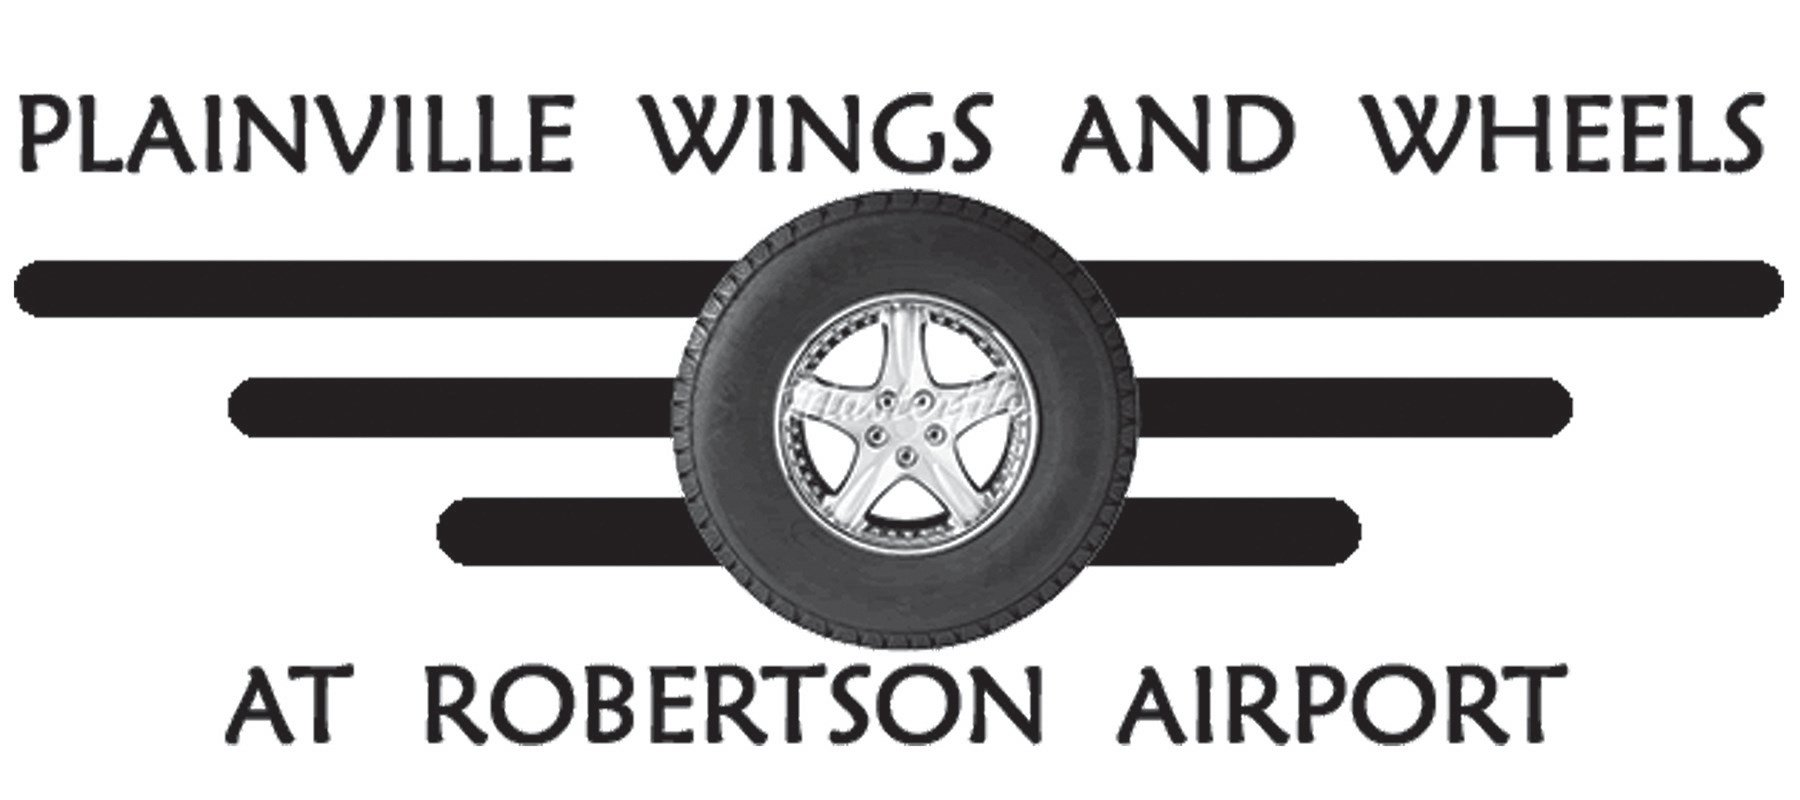 This year marks the 6th Annual fly-in and classic car show hosted by Plainville Wings and Wheels.